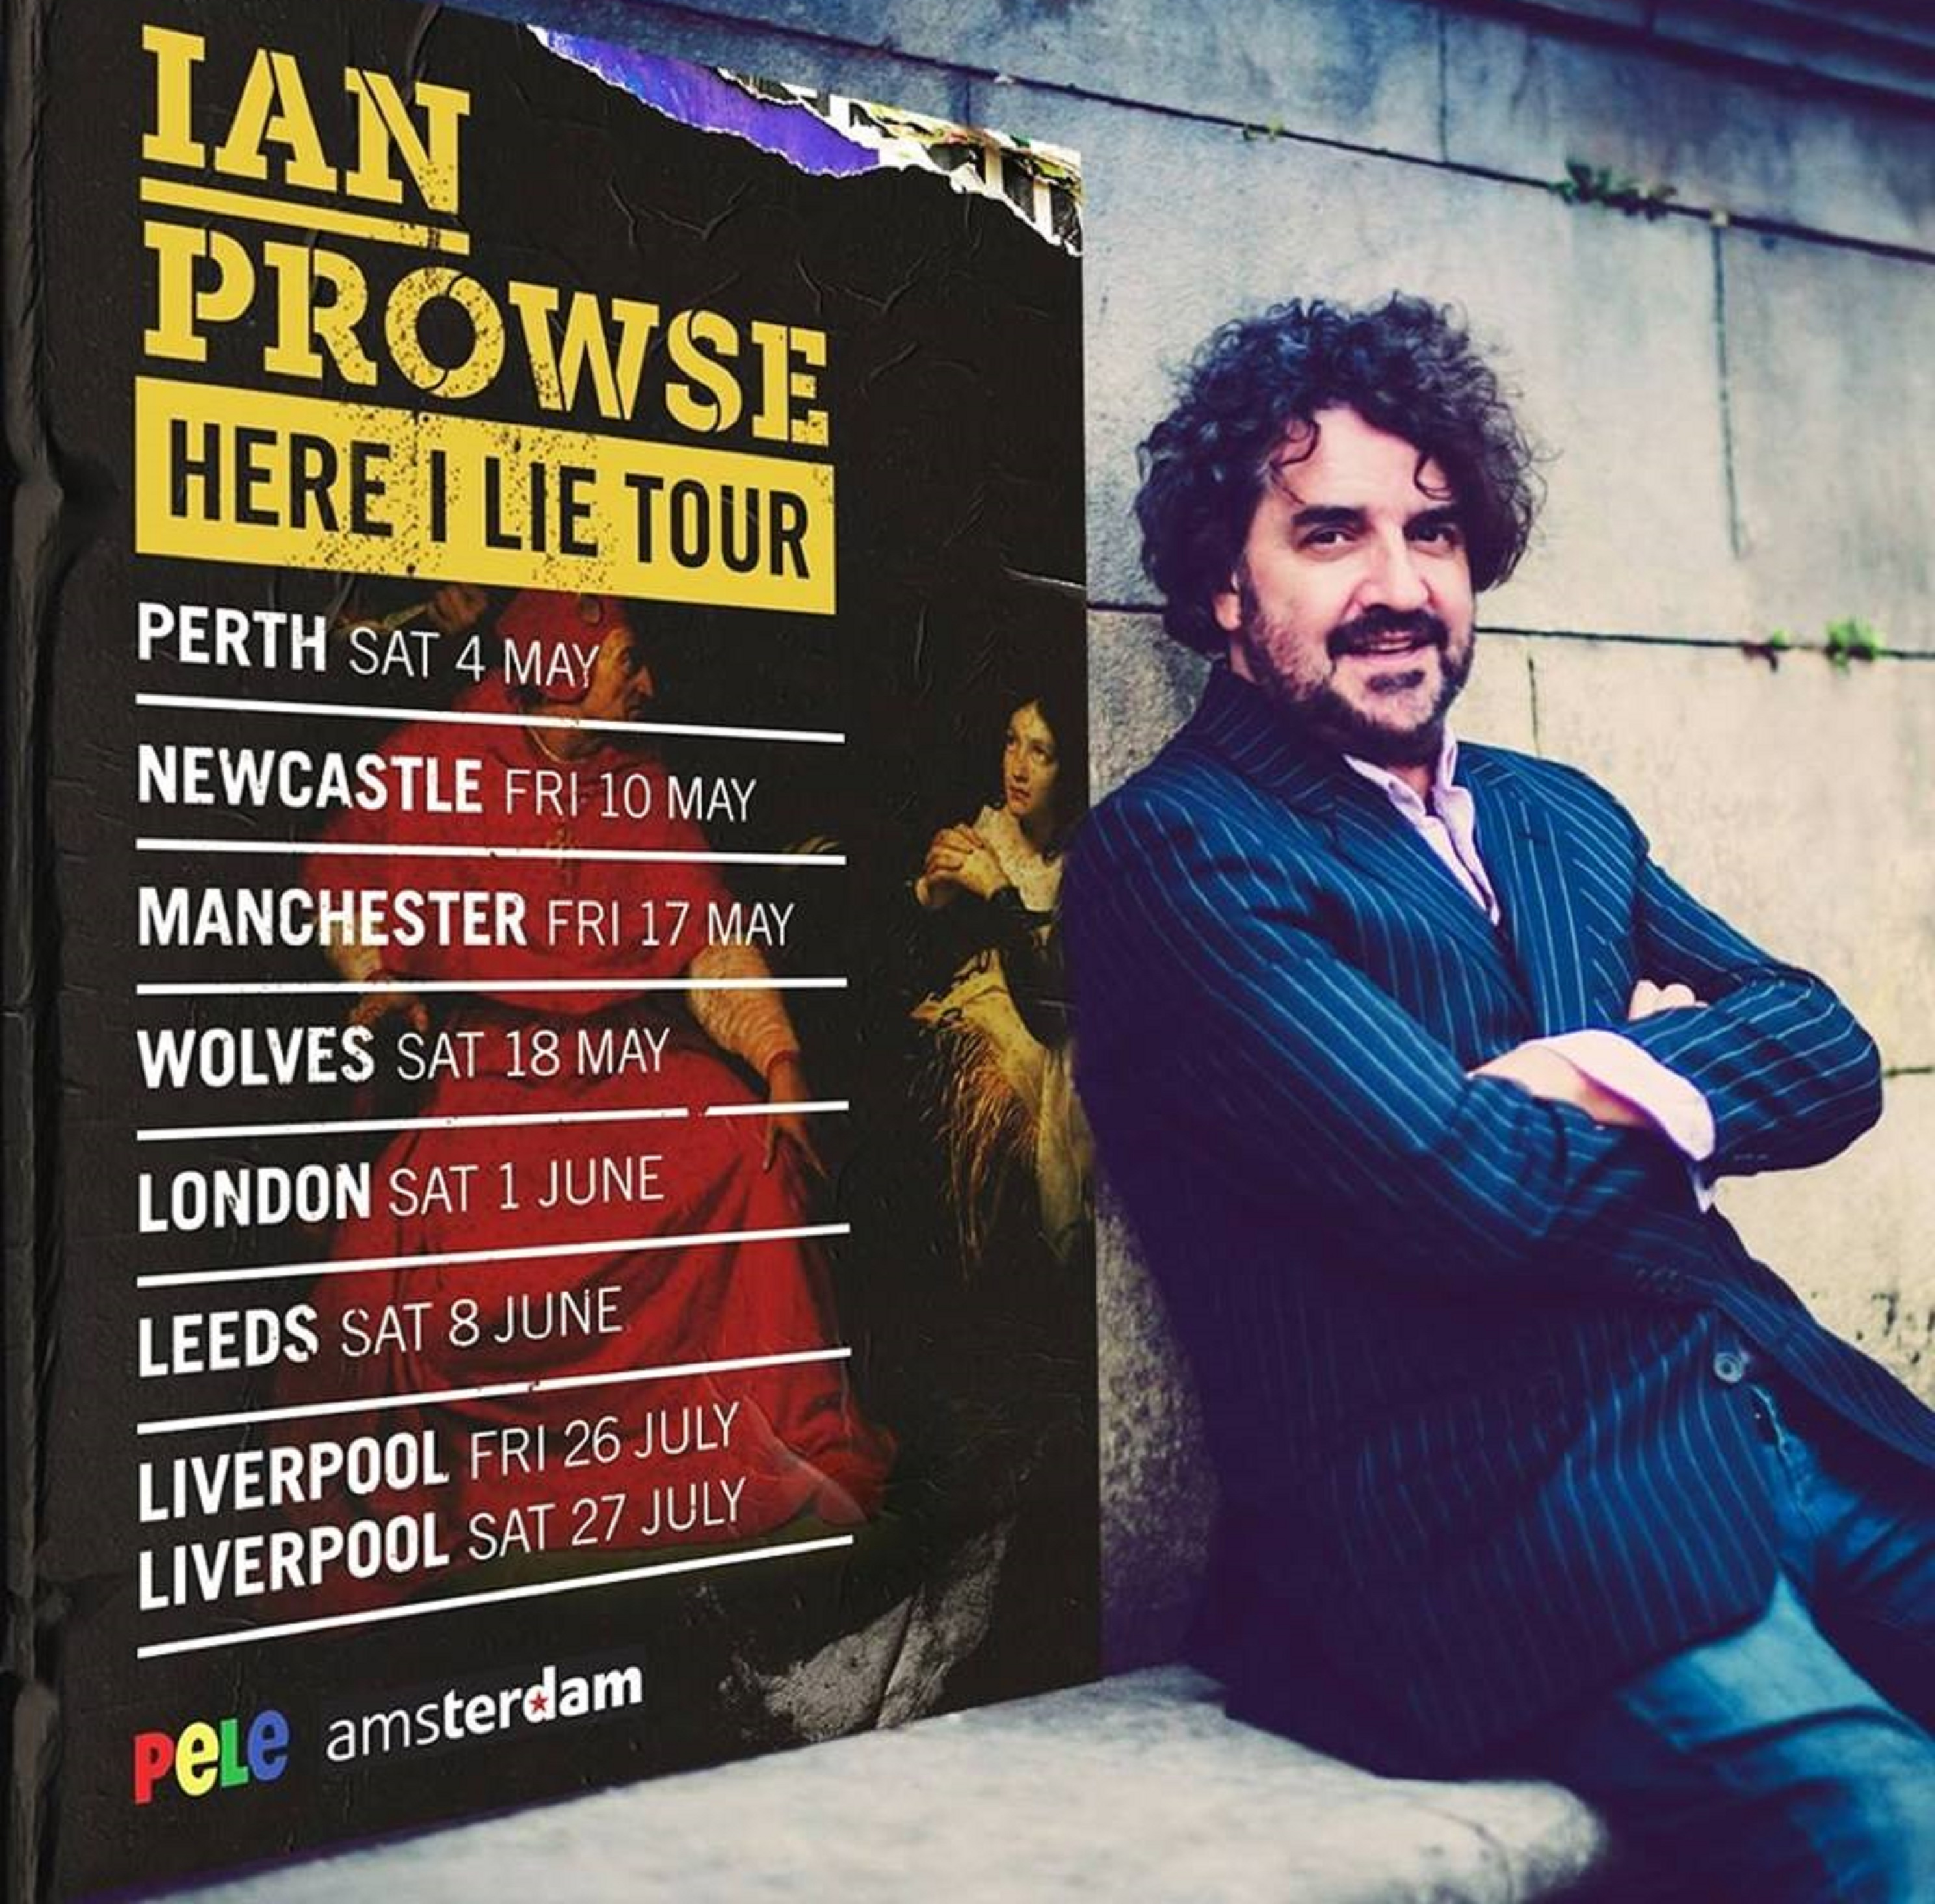 Ian Prowse's new solo album is released today.